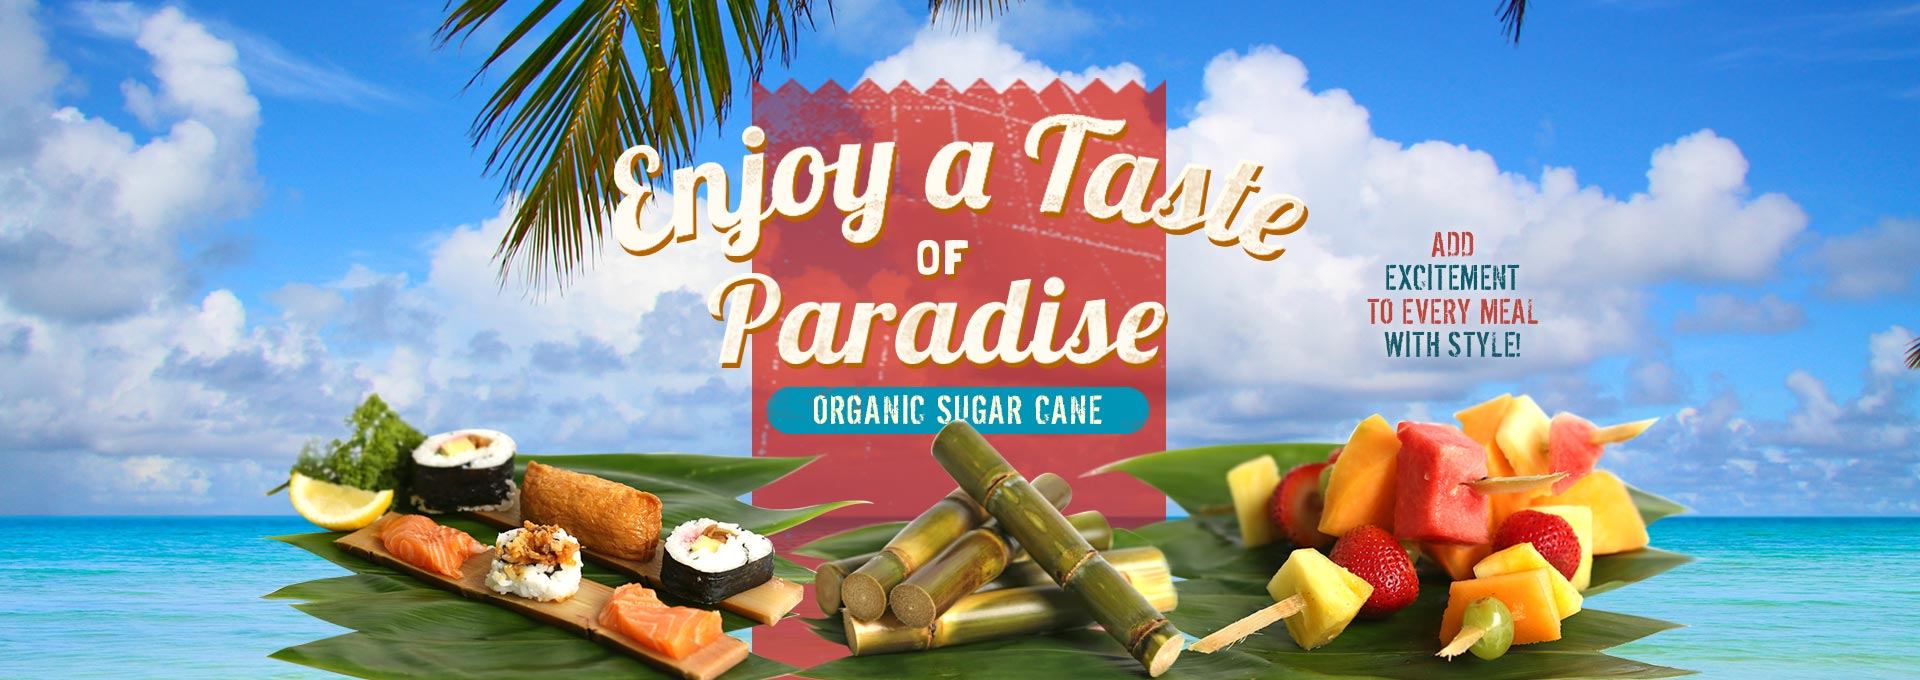 Organic Sugar Cane Products